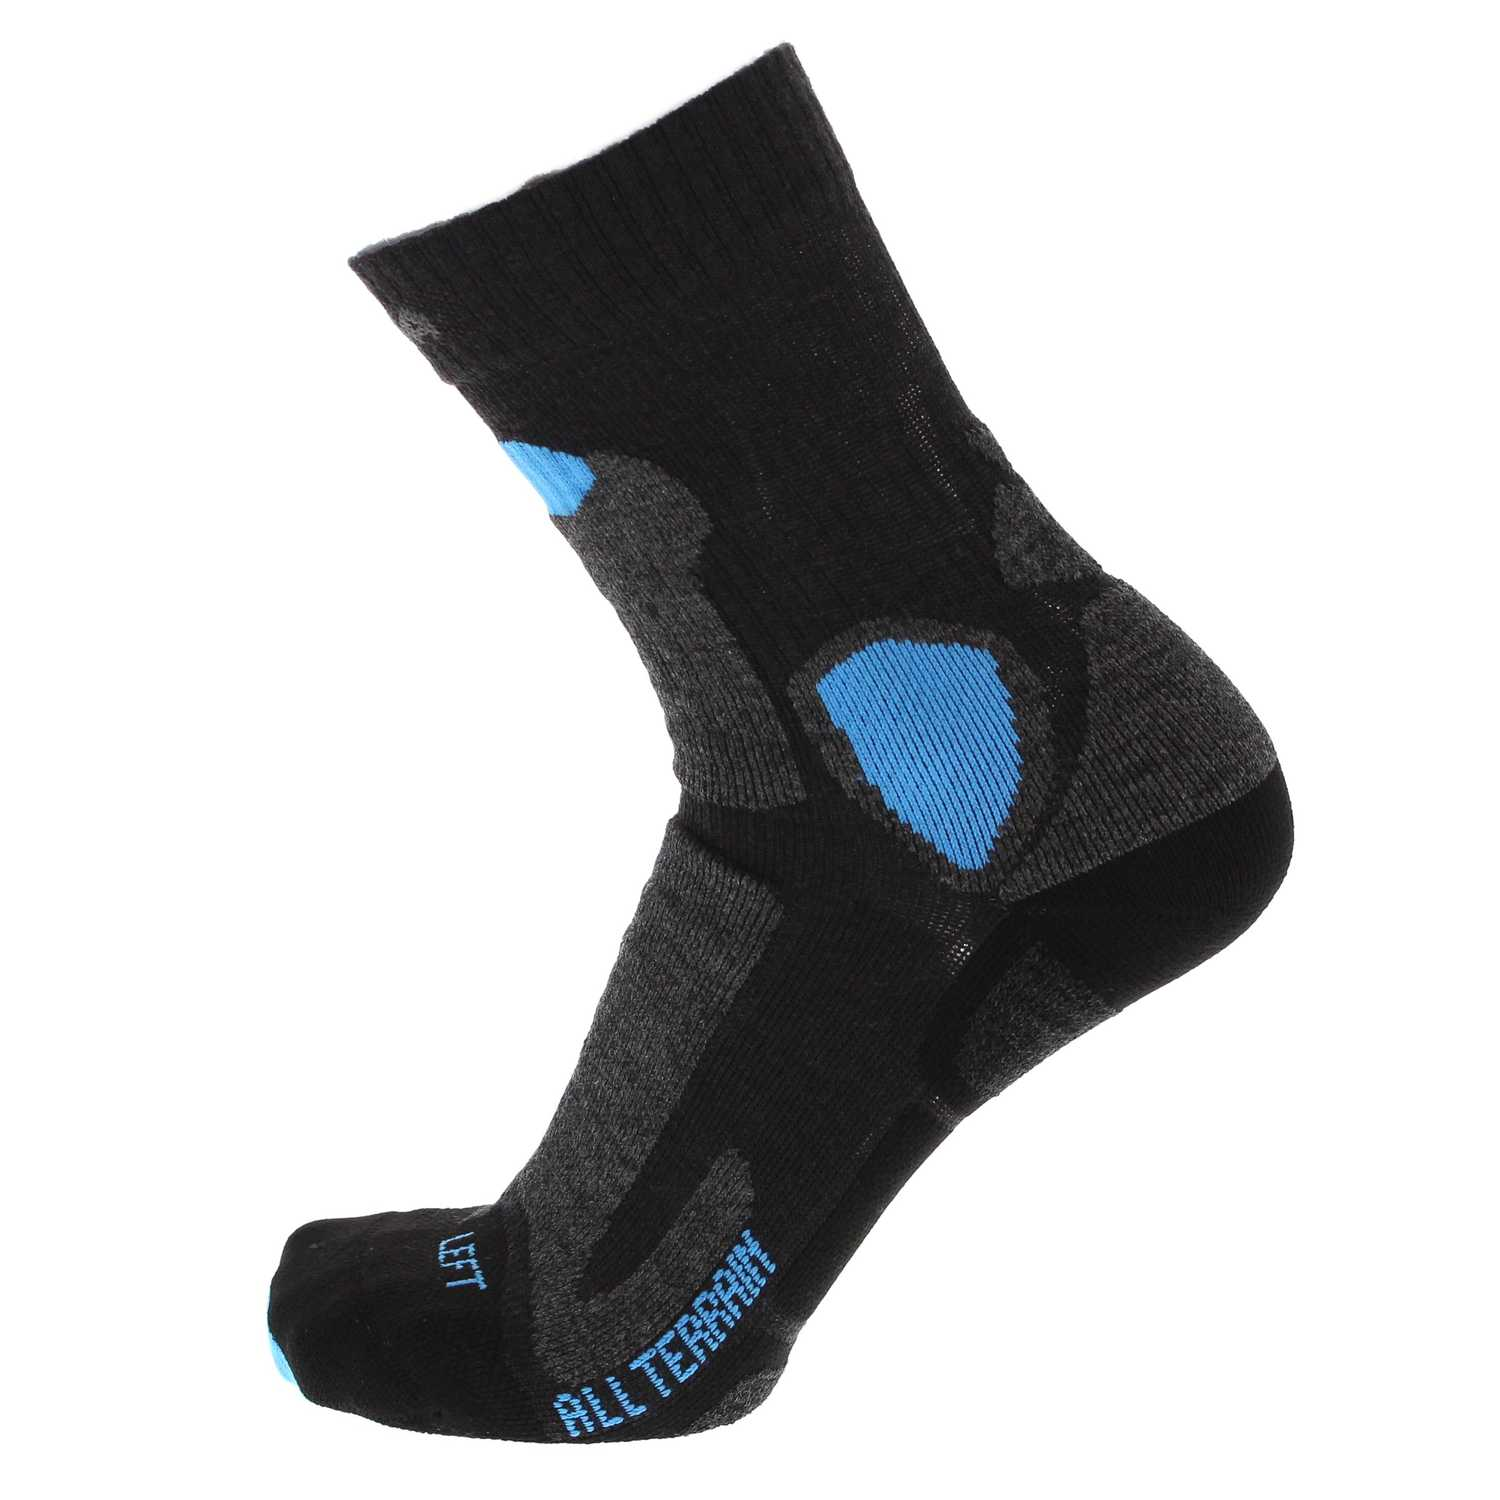 lowa-x-sox-all-terrain-index-4-schwarz-blau-unisex-socken